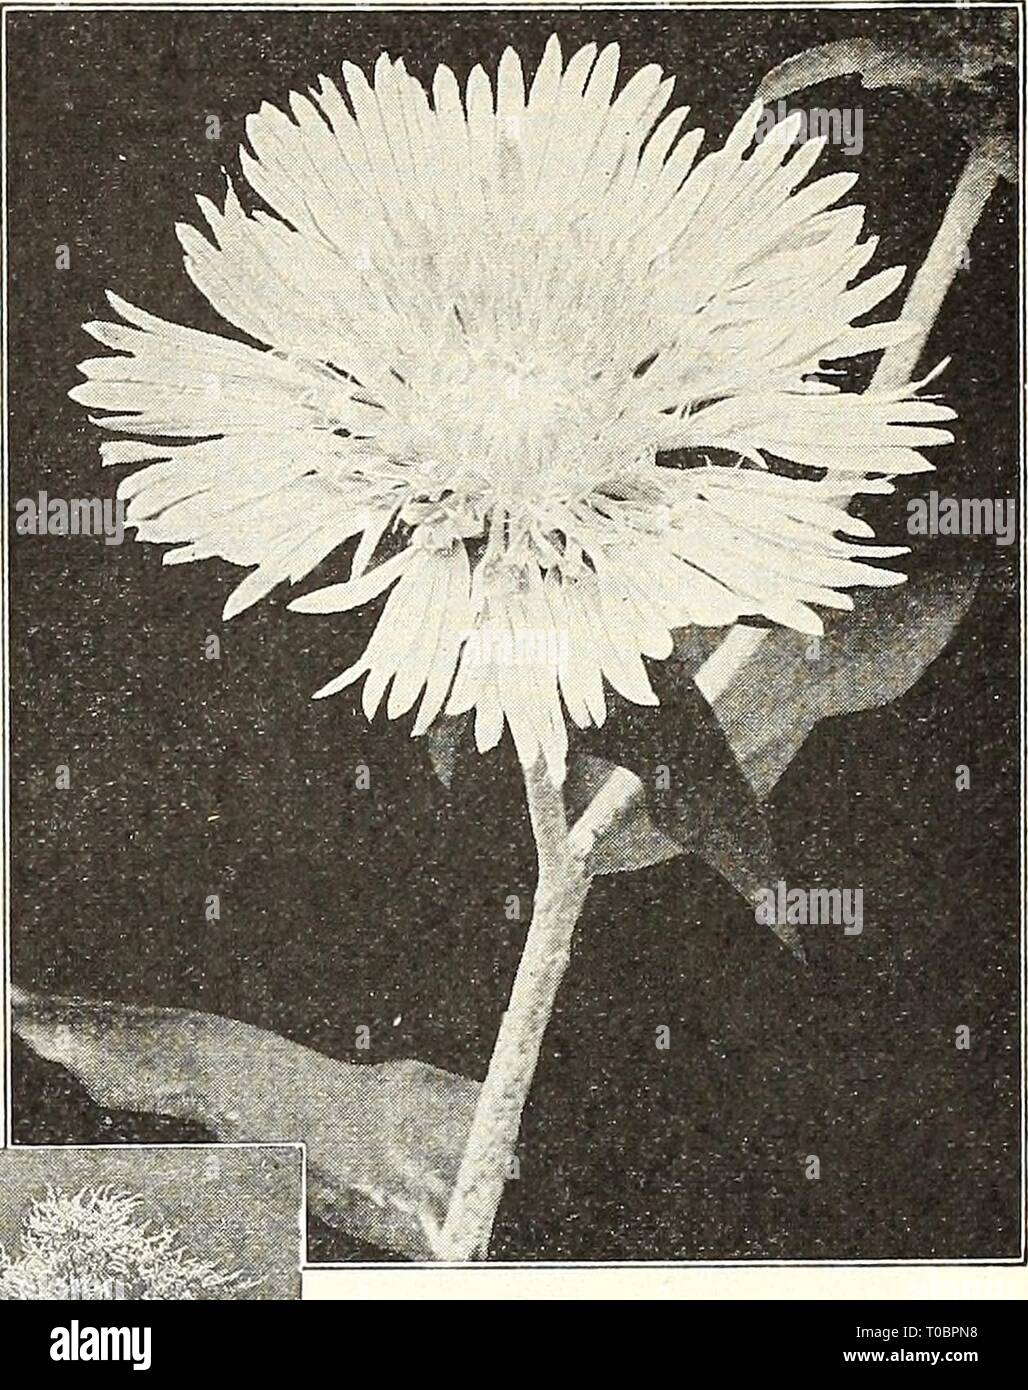 Dreer's garden book 1924 (1924) Dreer's garden book 1924 dreersgardenbook1924henr Year: 1924  Sweet William Stokesia (Cornflower Aster) SWEET WILLIAM (Dianthus Barbatus) A well-known attractive, free-flower- ing hardy perennial, producing in early summer a splendid effect in beds and borders, with their rich and varied flow- ers. We can supply the following, all grown from our own select strain of seed. Newport Pink. The prettiest color among Sweet Williams, a lovely salmon or watermelon pink. Pure White. Very large individual flowers and trusses. Scarlet Beauty. Rich deep scarlet; very eftect - Stock Image